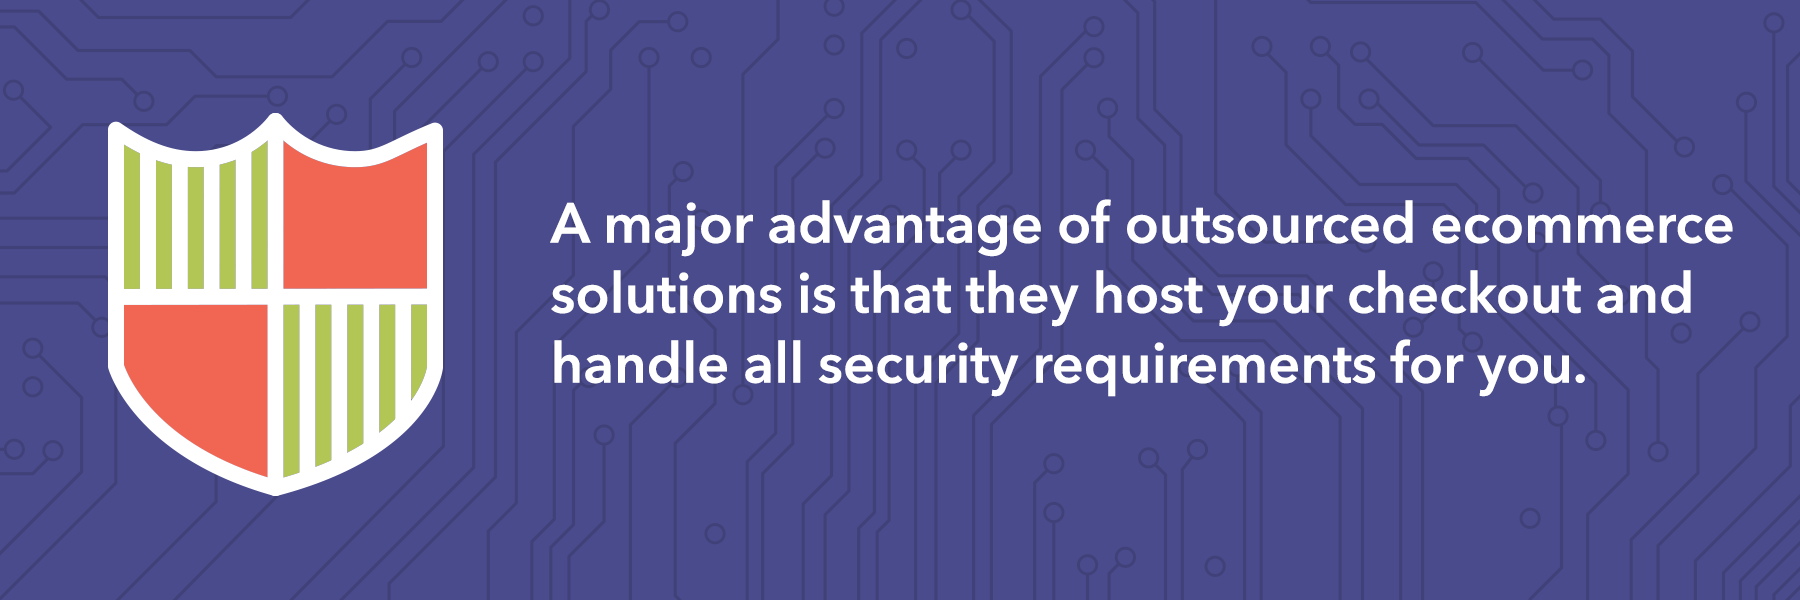 A major advantage of hosted ecommerce solutions is that they handle all the security requirements for you.